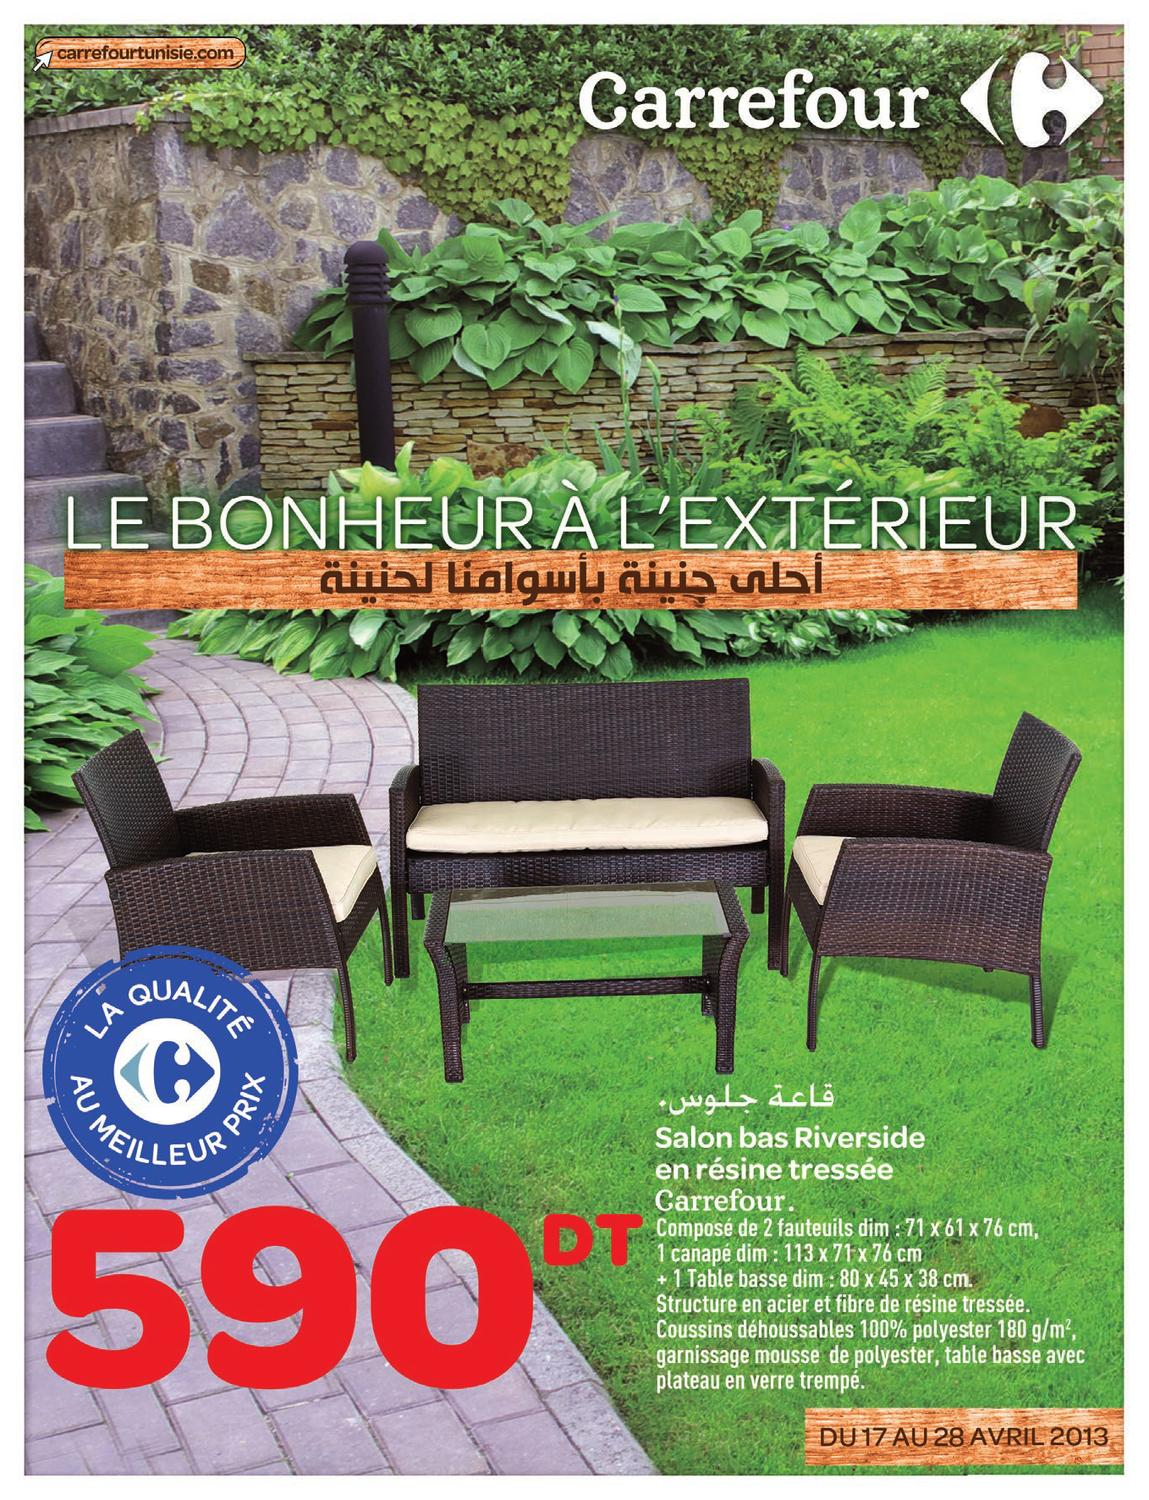 Issuu catalogue carrefour le bonheur l 39 ext rieur by for Salon de jardin carrefour home